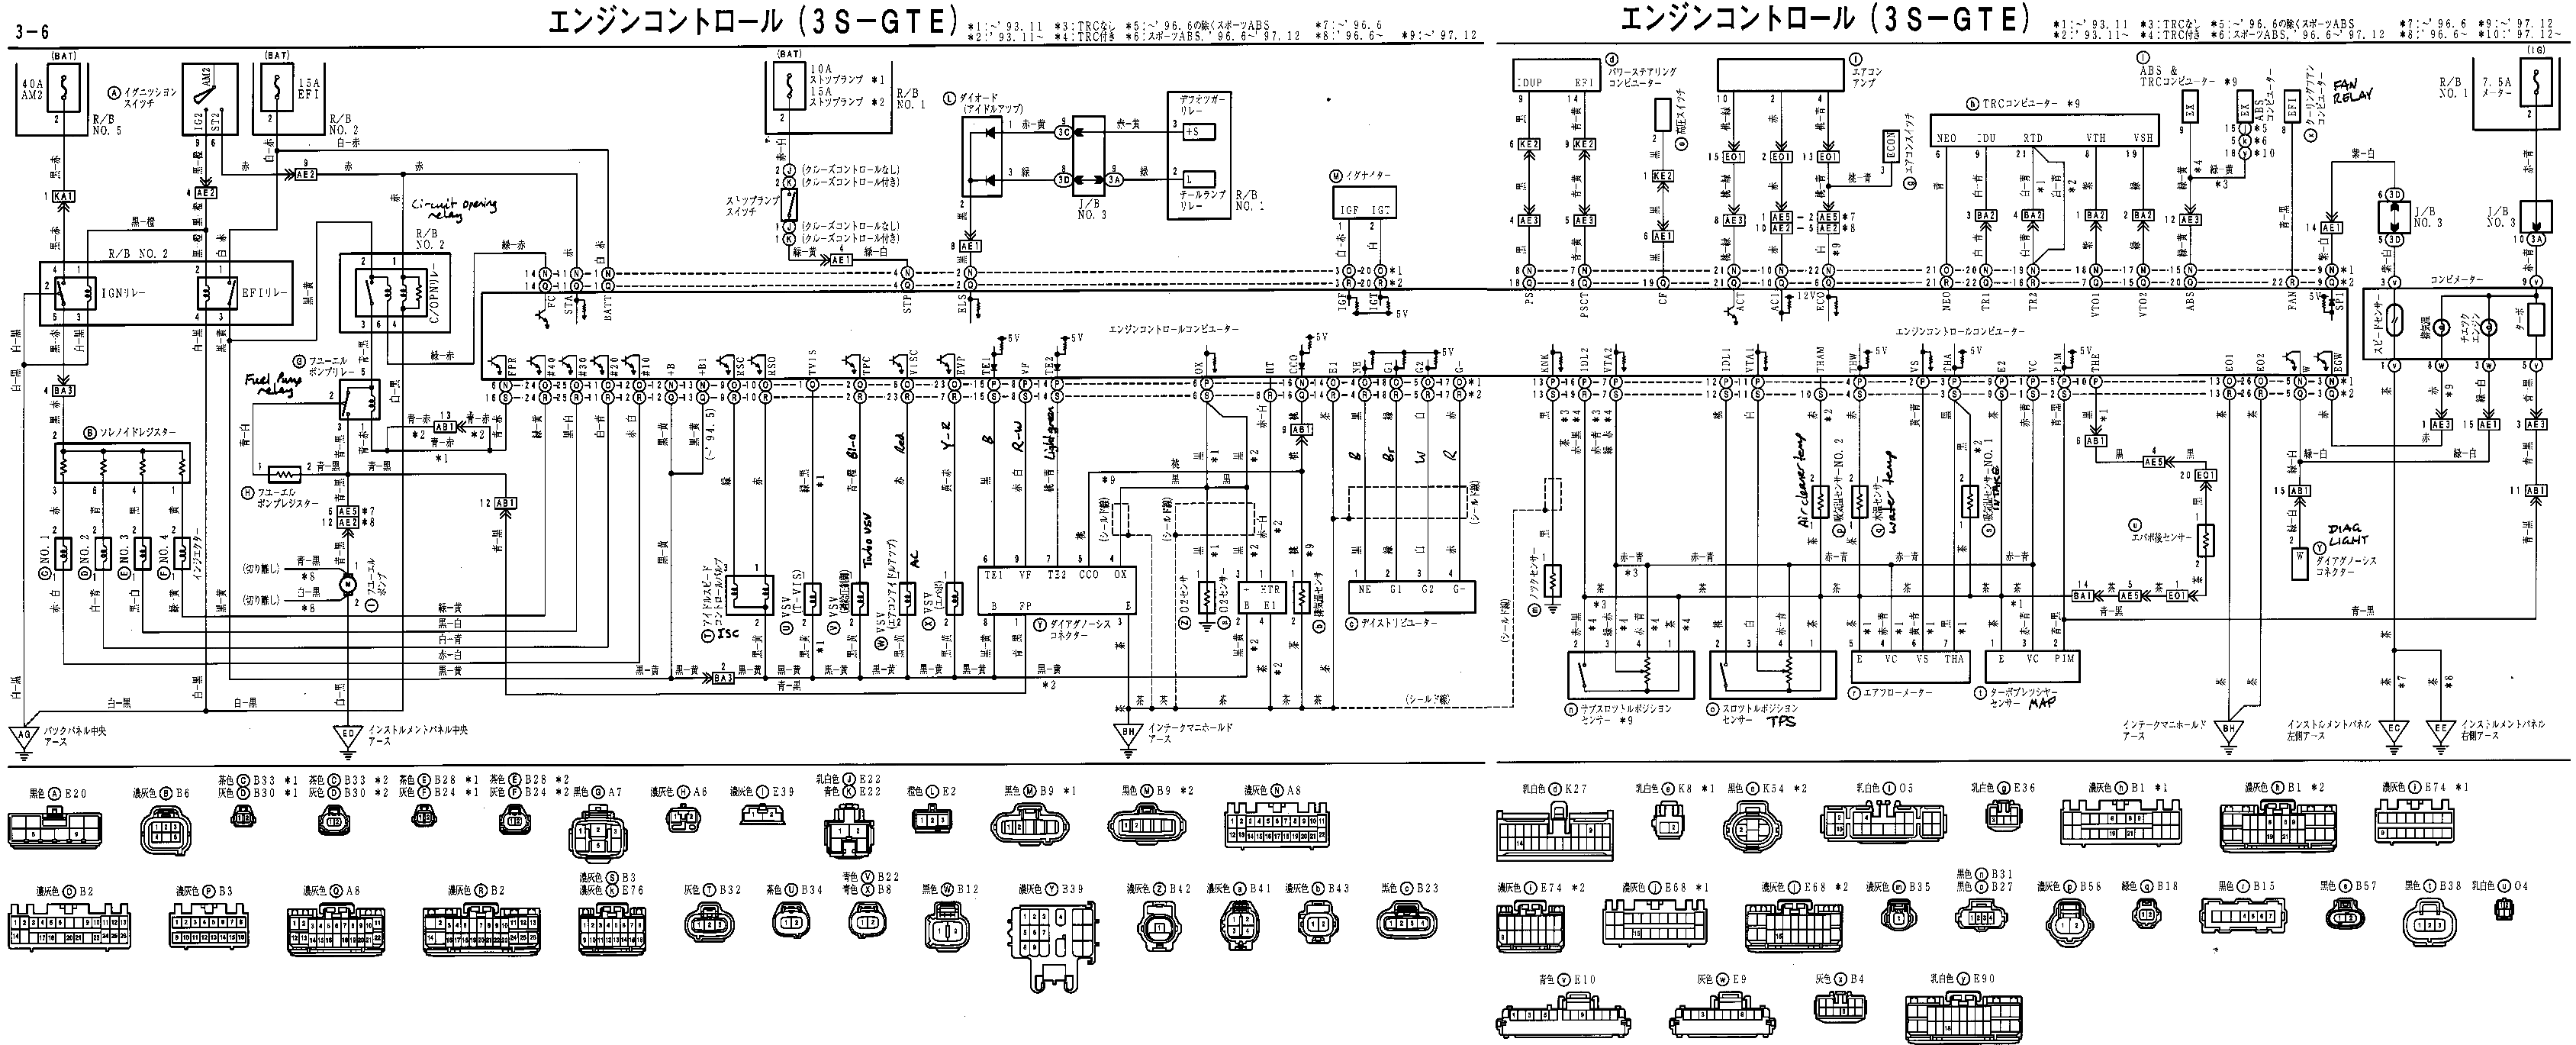 Unknown 3SGTE Diagram mwp's toyota celica gt4 (st165, st185, st205) documents & media toyota celica wiring diagram at fashall.co